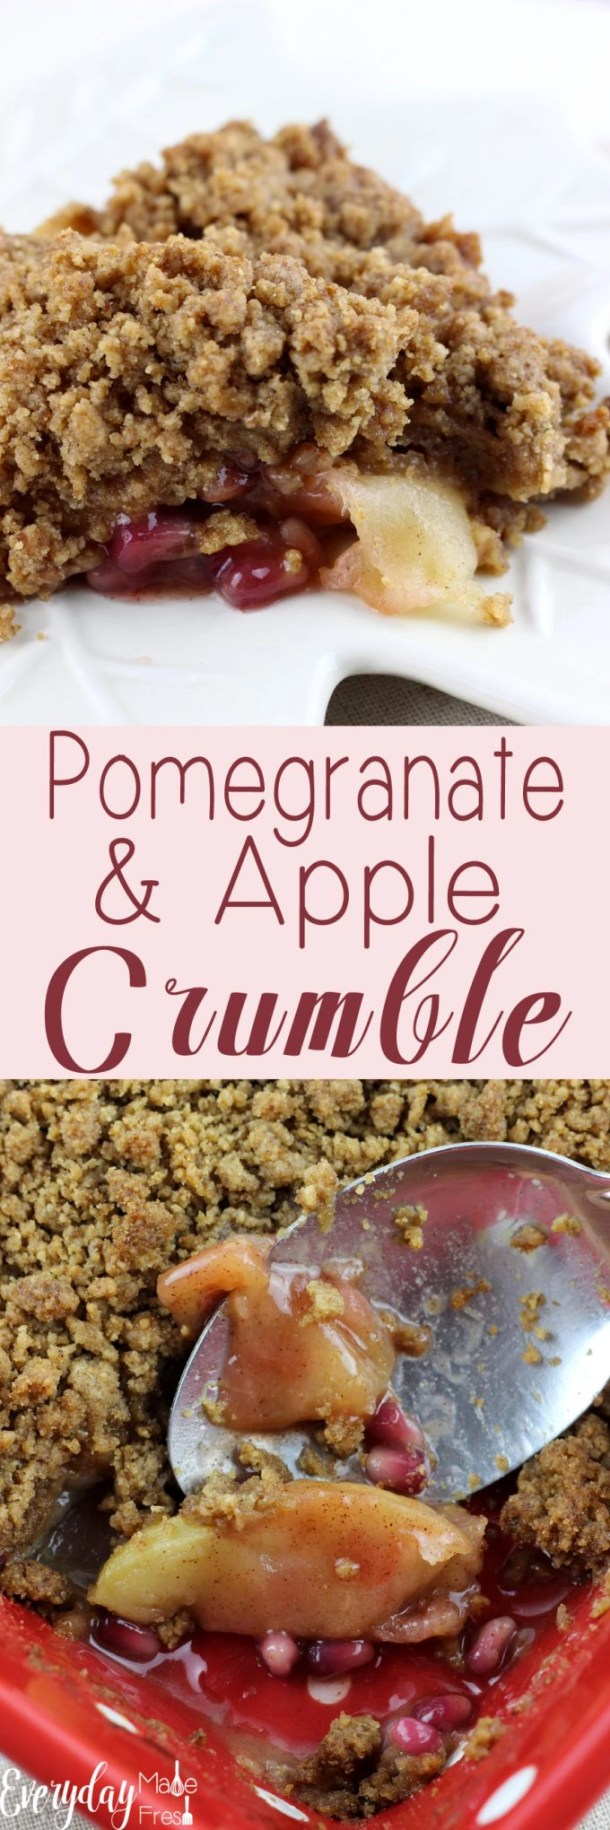 This Pomegranate & Apple Crumble is sweet, tart, and spiced with cinnamon. The topping is a crunchy crumble with all the warm winter spices that  you know and love. | EverydayMadeFresh.com